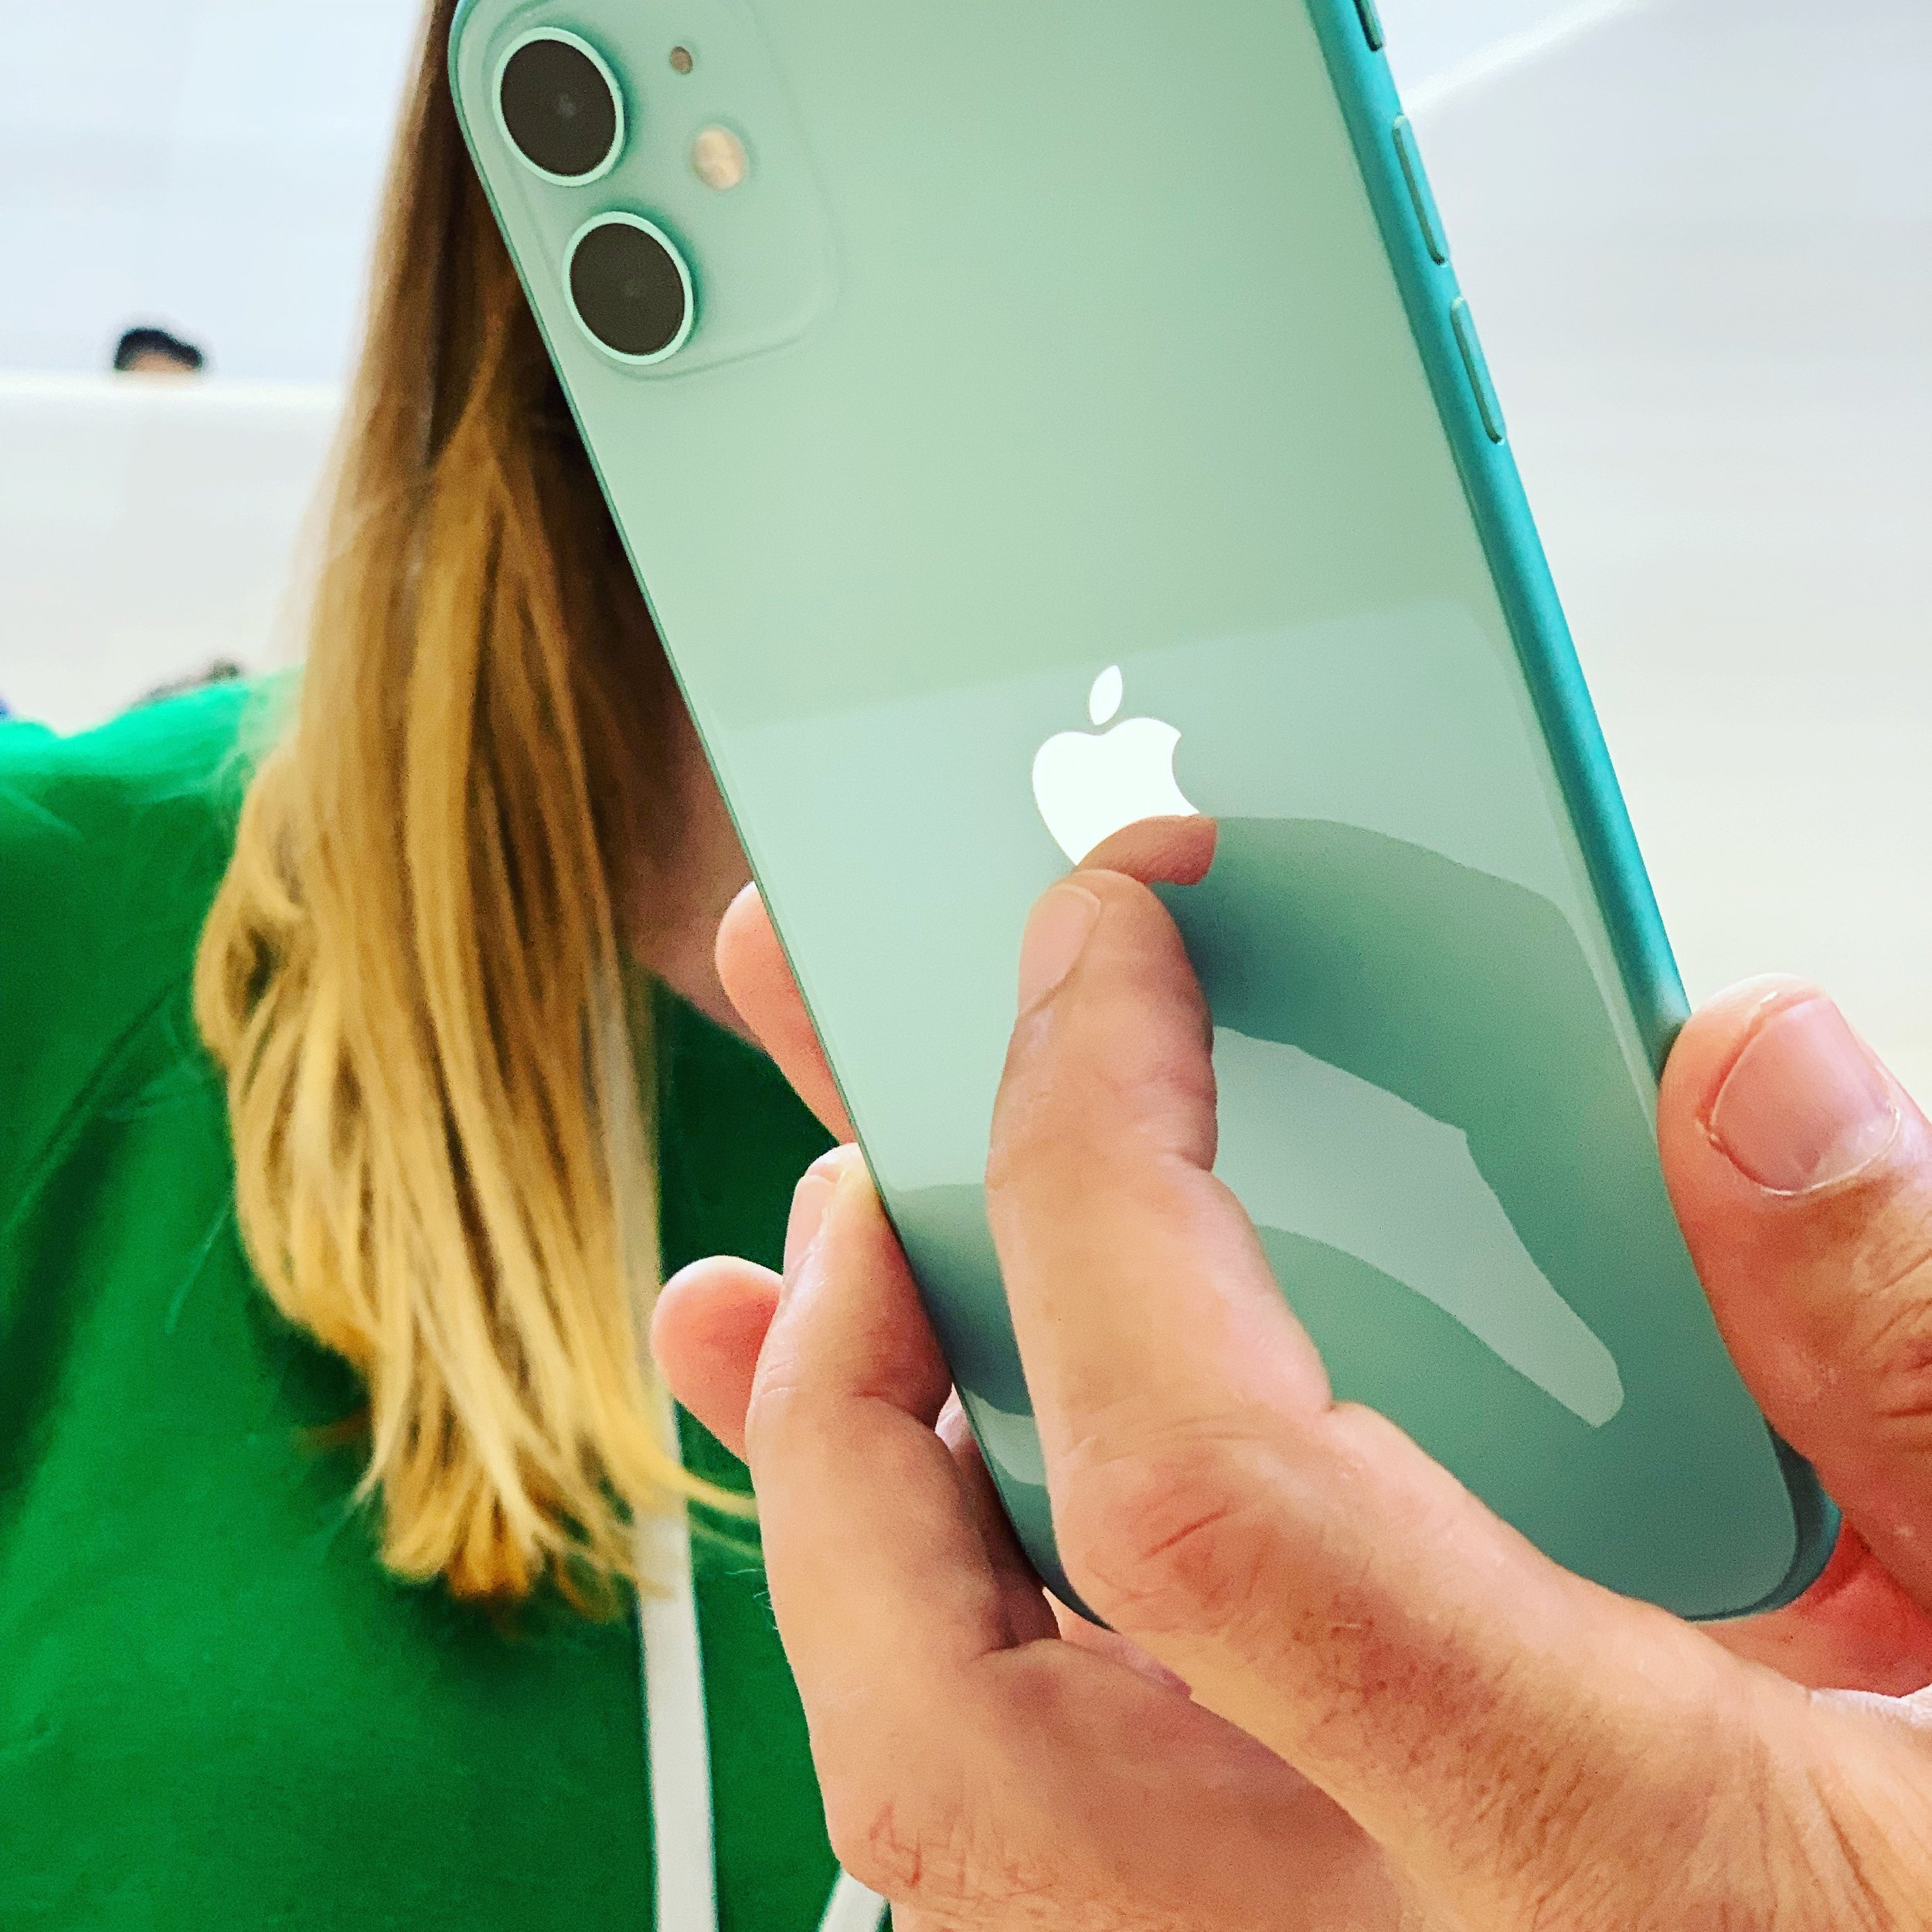 green iPhone 11.jpg